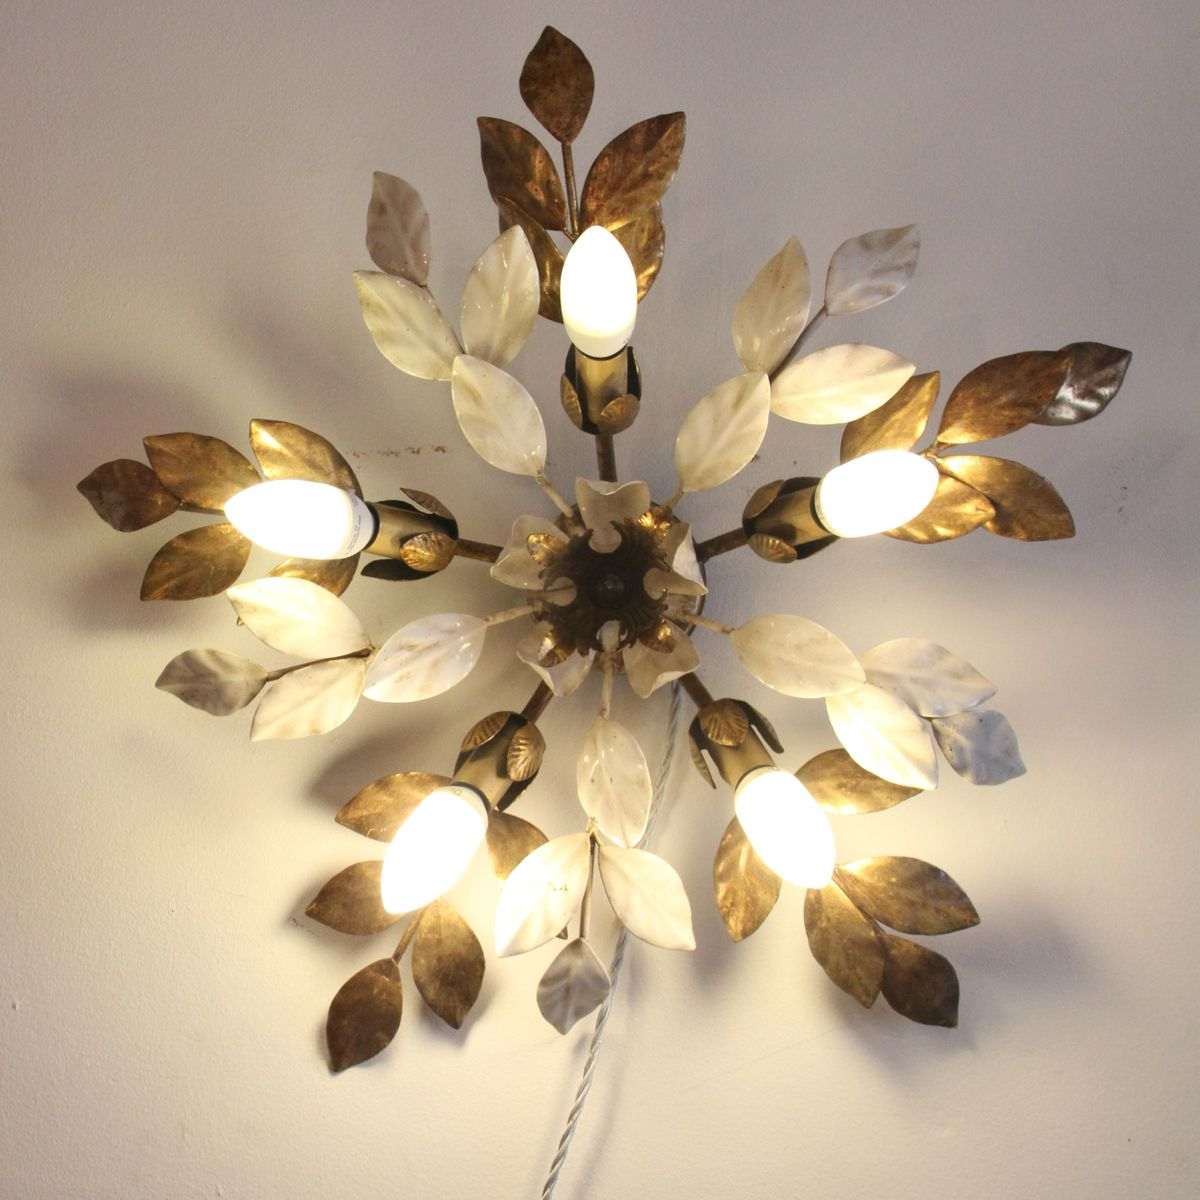 French Enamel Wall Lights : Vintage French Large Gilt Metal & Enamel Wall Light for sale at Pamono